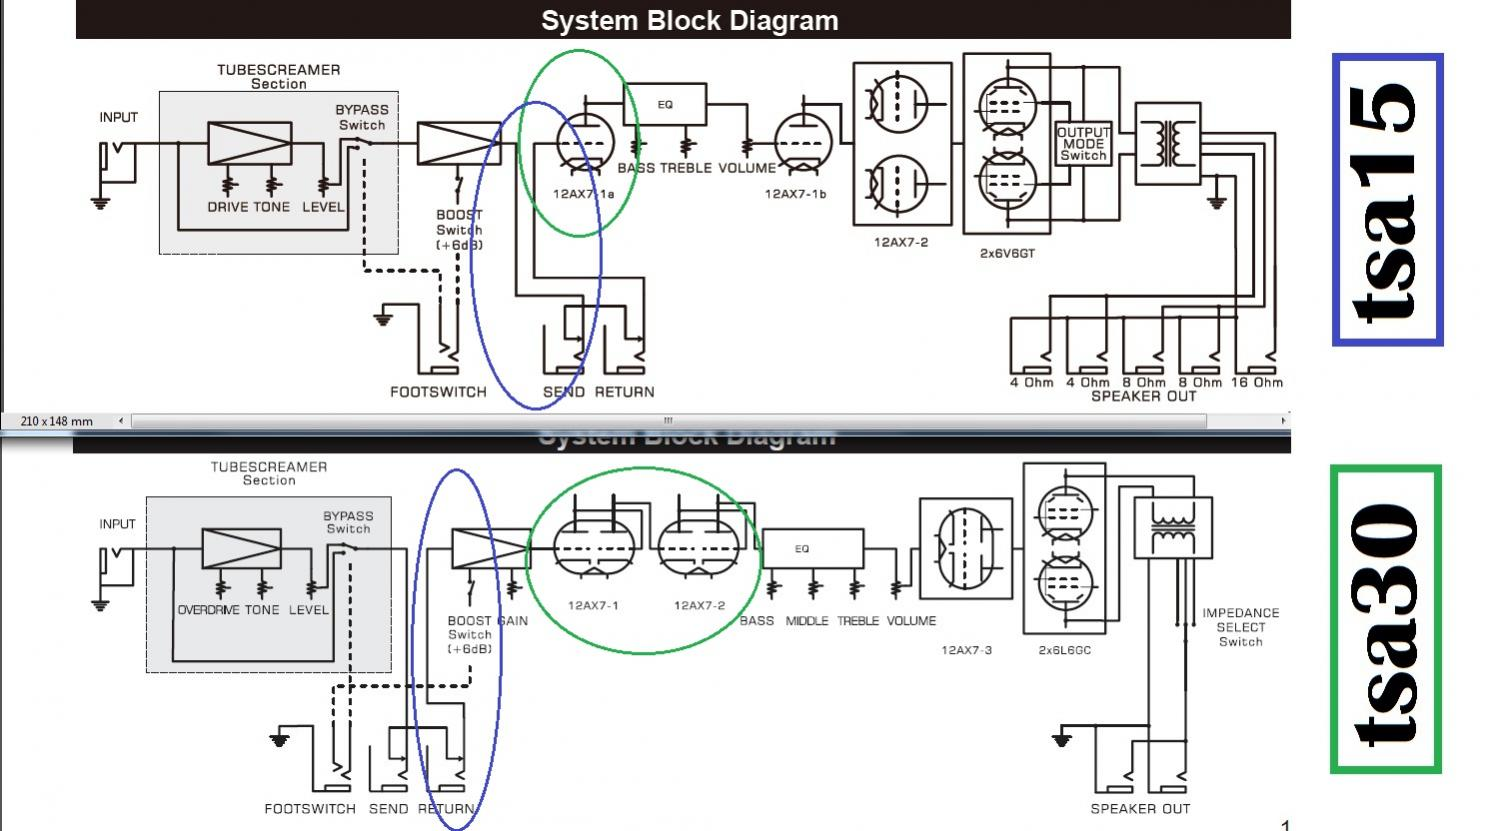 Volkswagen wiring diagram, volkswagen wiring diagram #6 moreover volkswagen wiring diagram #6